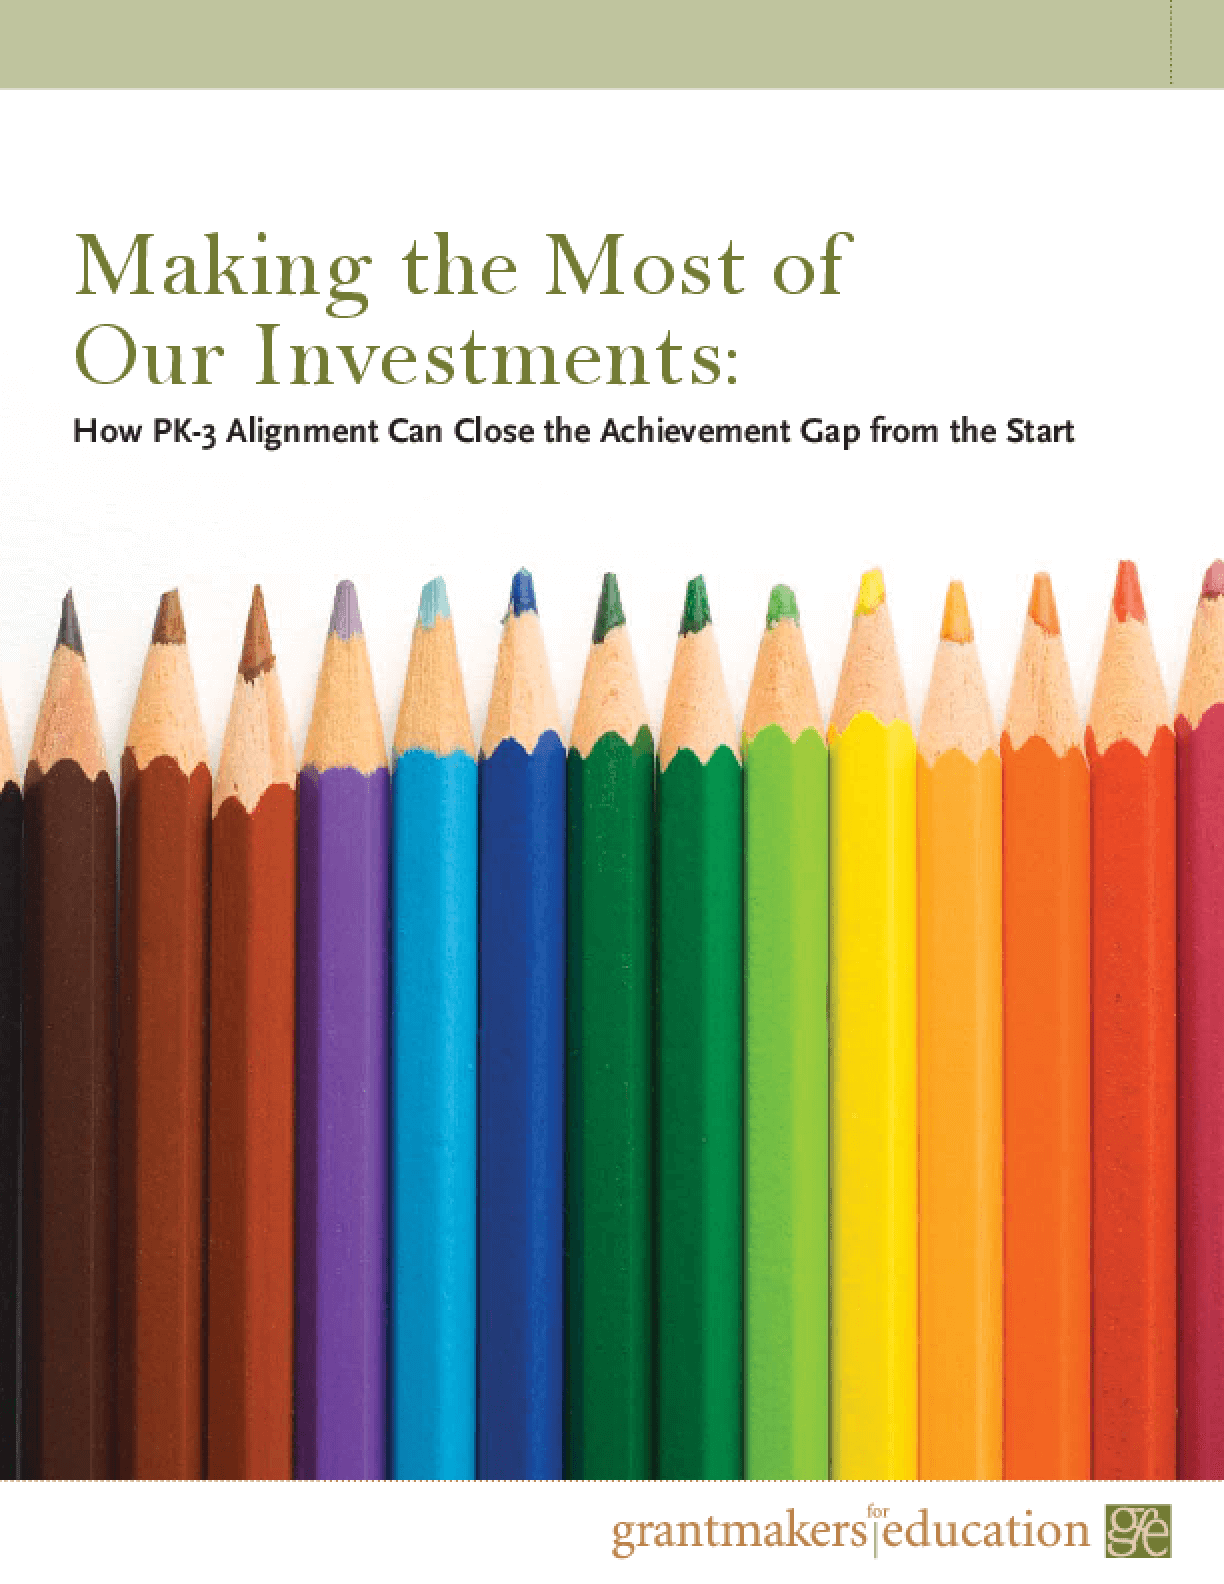 Making the Most of Our Investments: How PK-3 Alignment Can Close the Achievement Gap From the Start